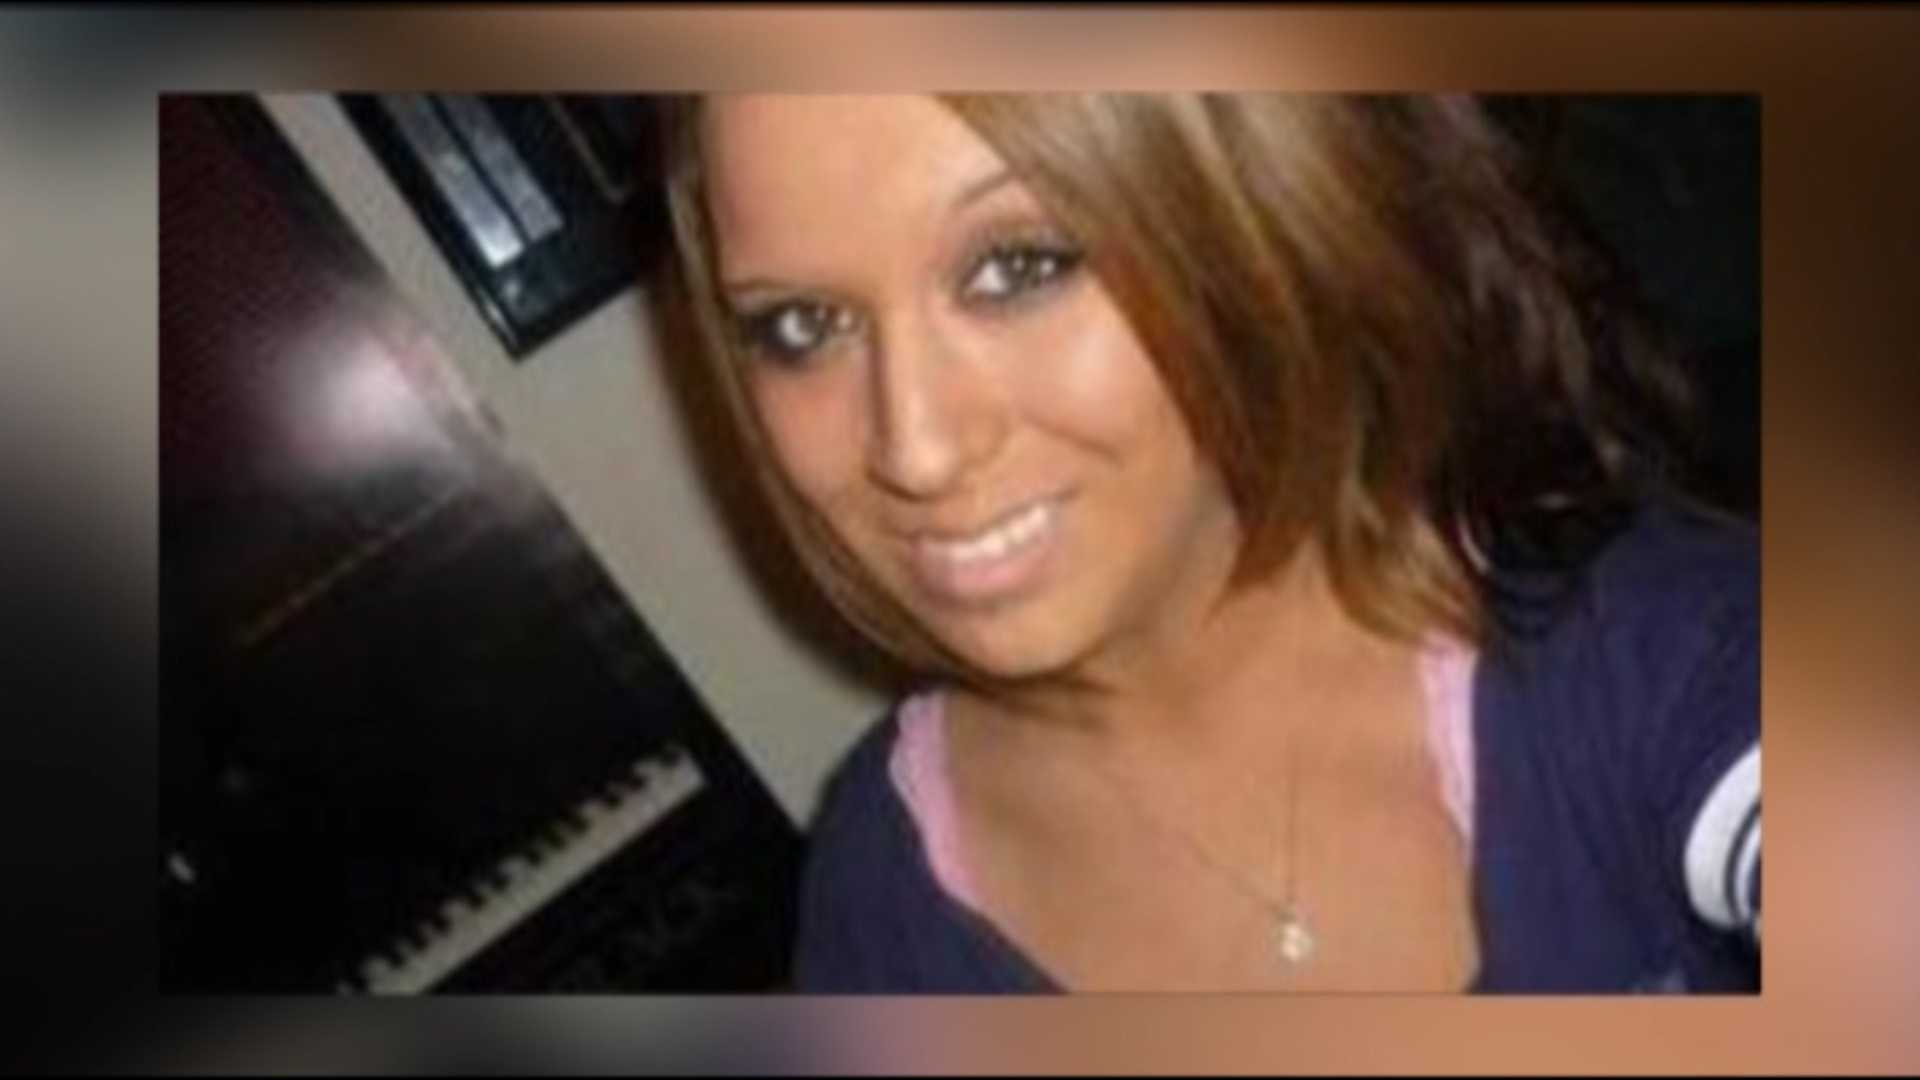 Keyes was in jail for the February 2012 murder of Samantha Koenig.